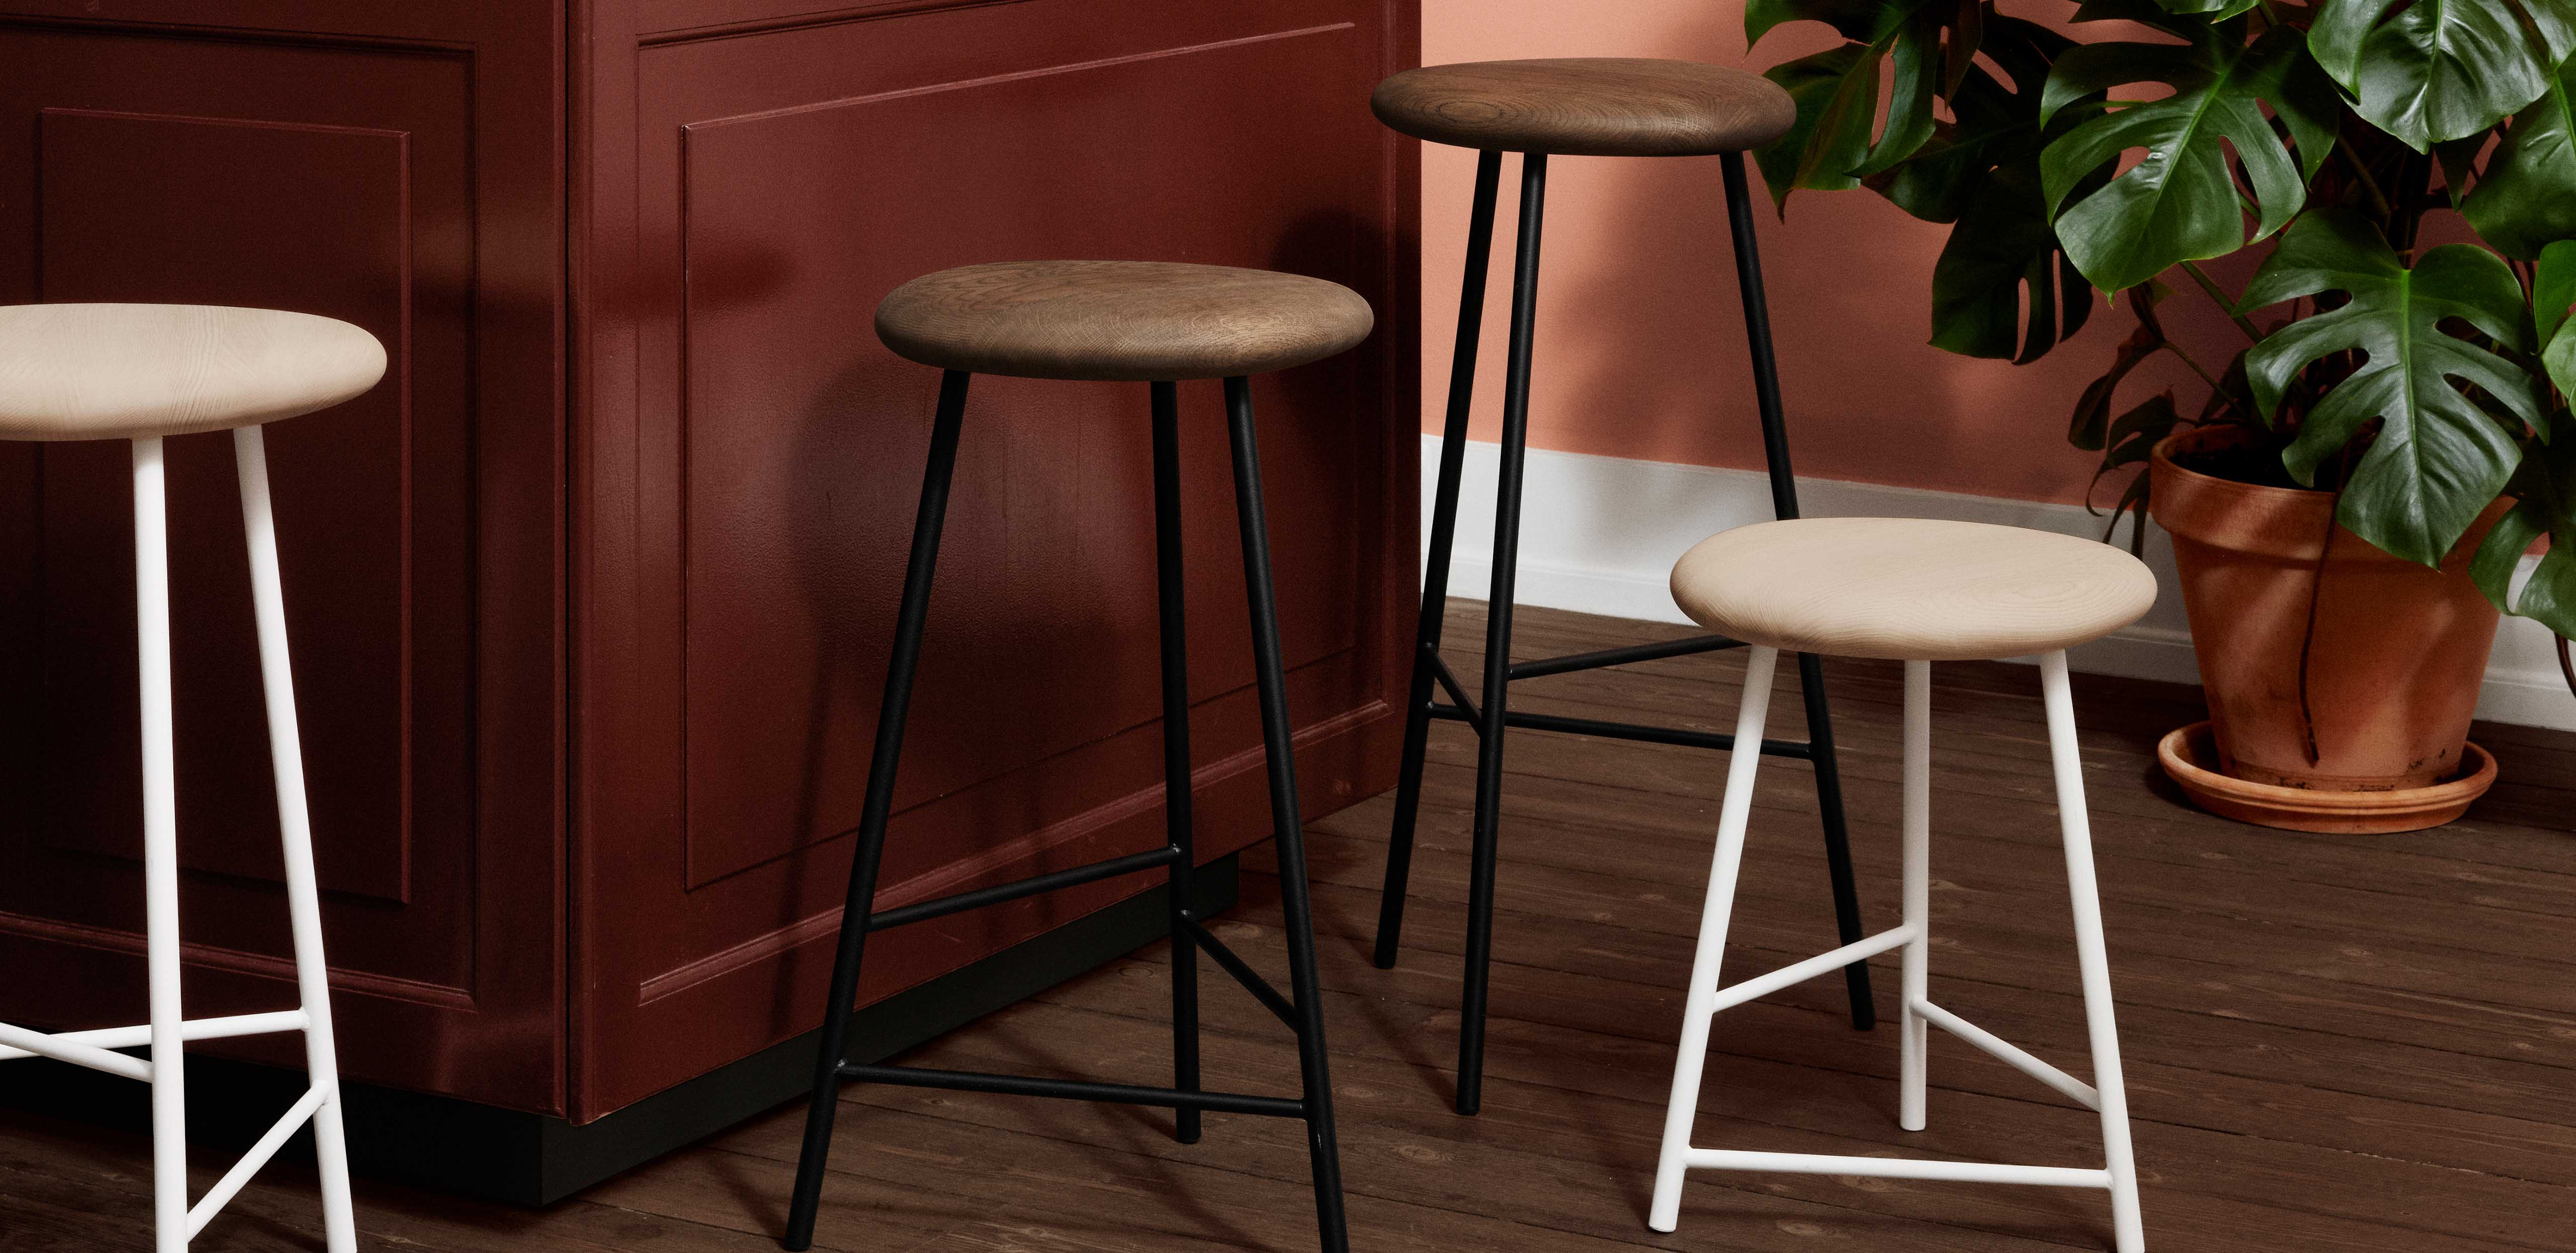 Pebble bar stools in a kitchen